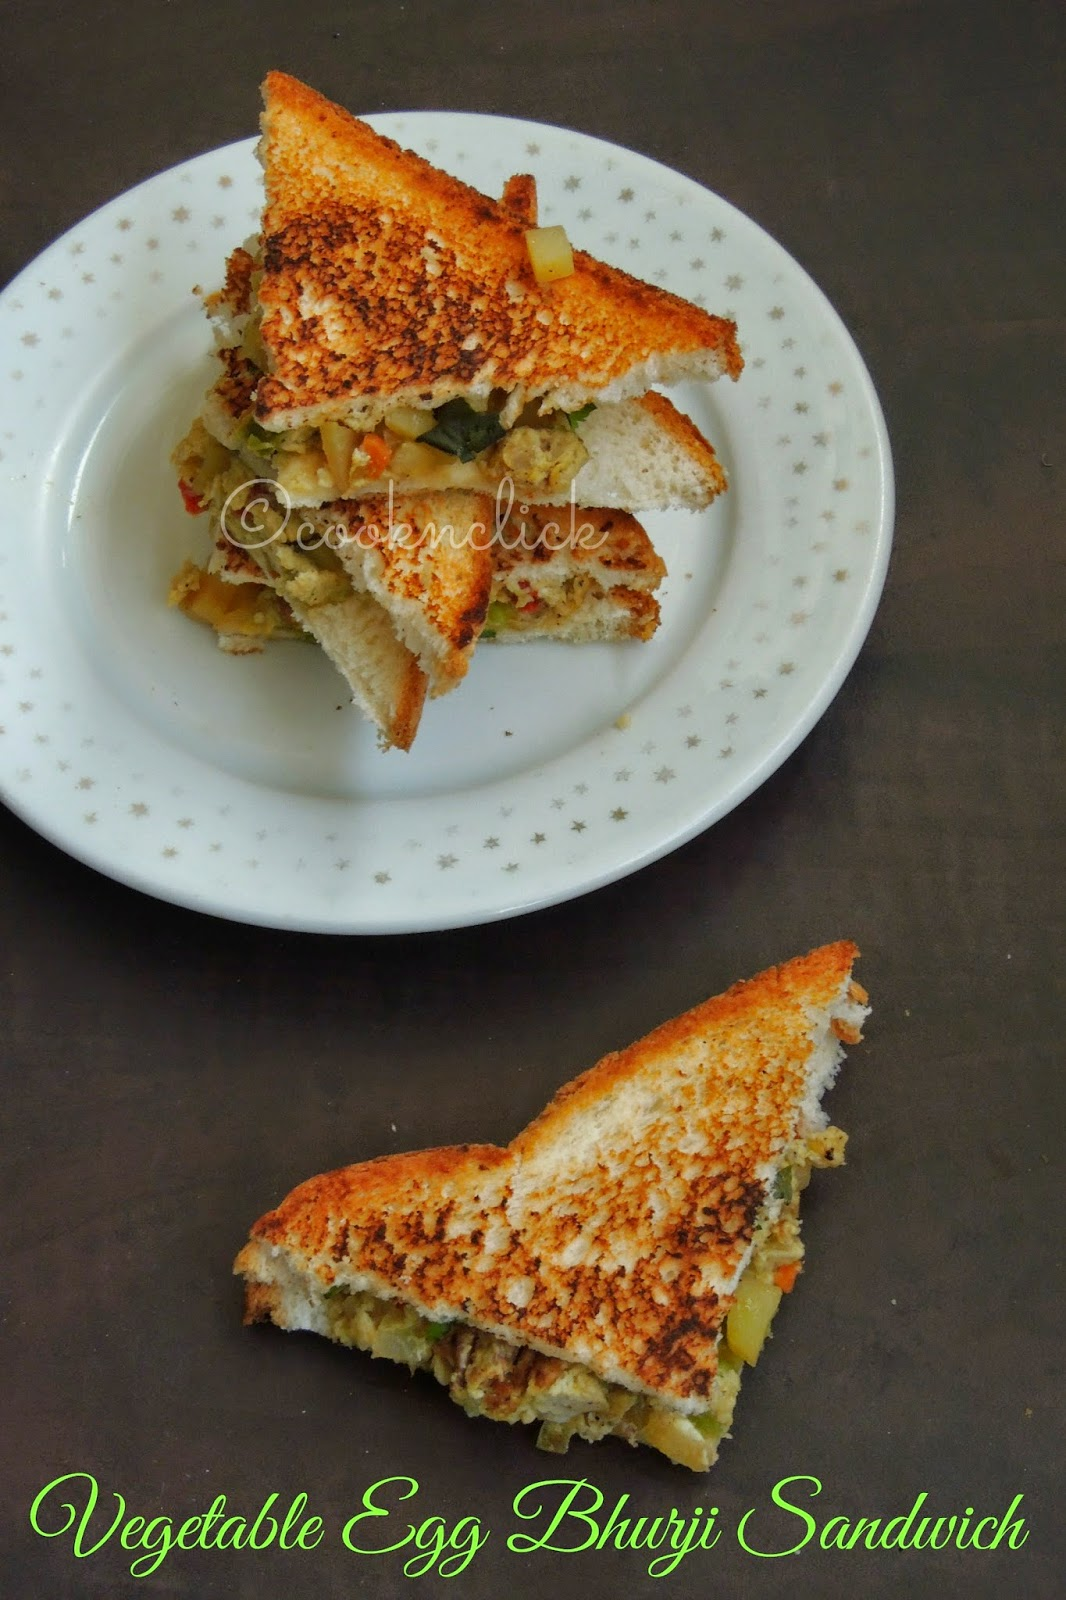 Vegetable scrambled egg sandwich, Vegetable egg bhurji sandwich